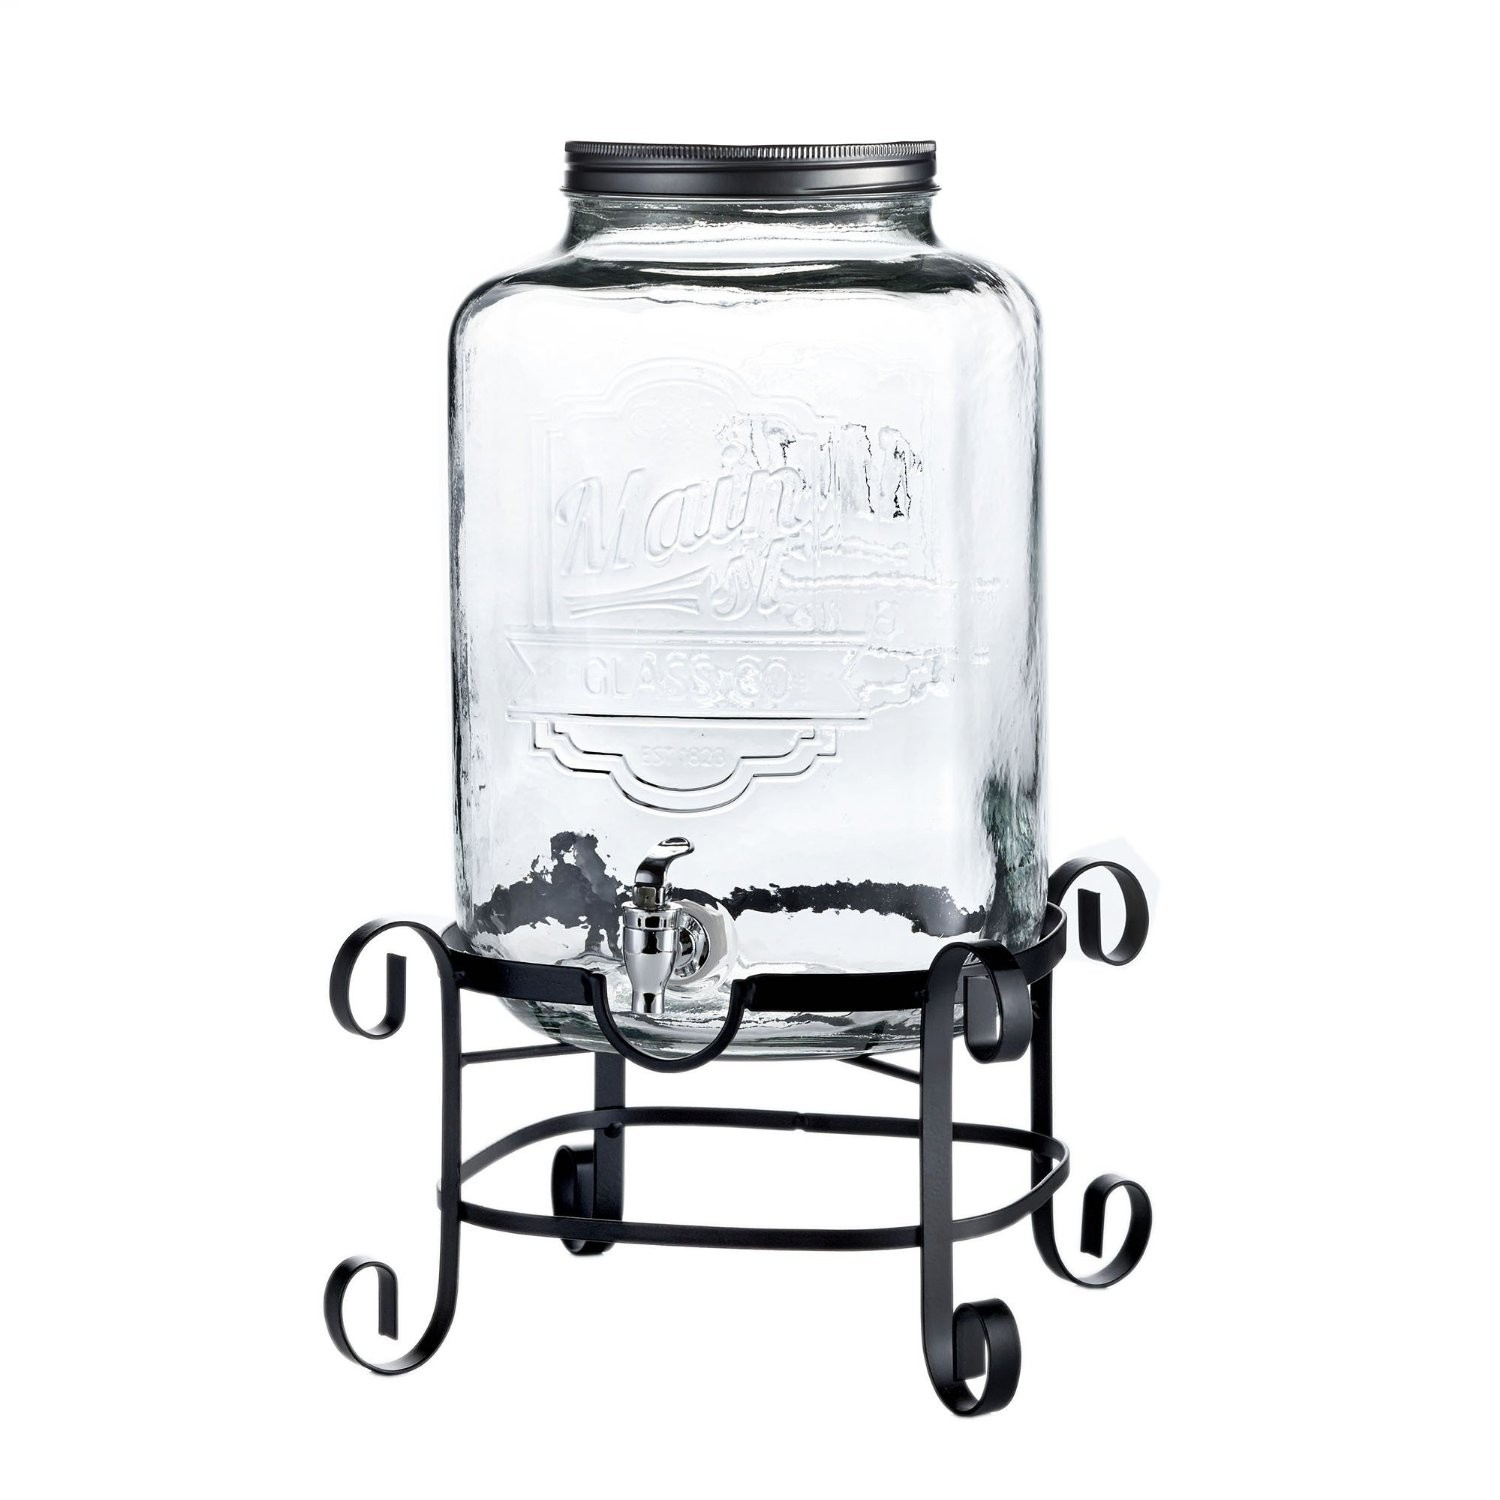 Jay Import 210263-GB Style Setter Main Street Beverage Dispenser with Stand